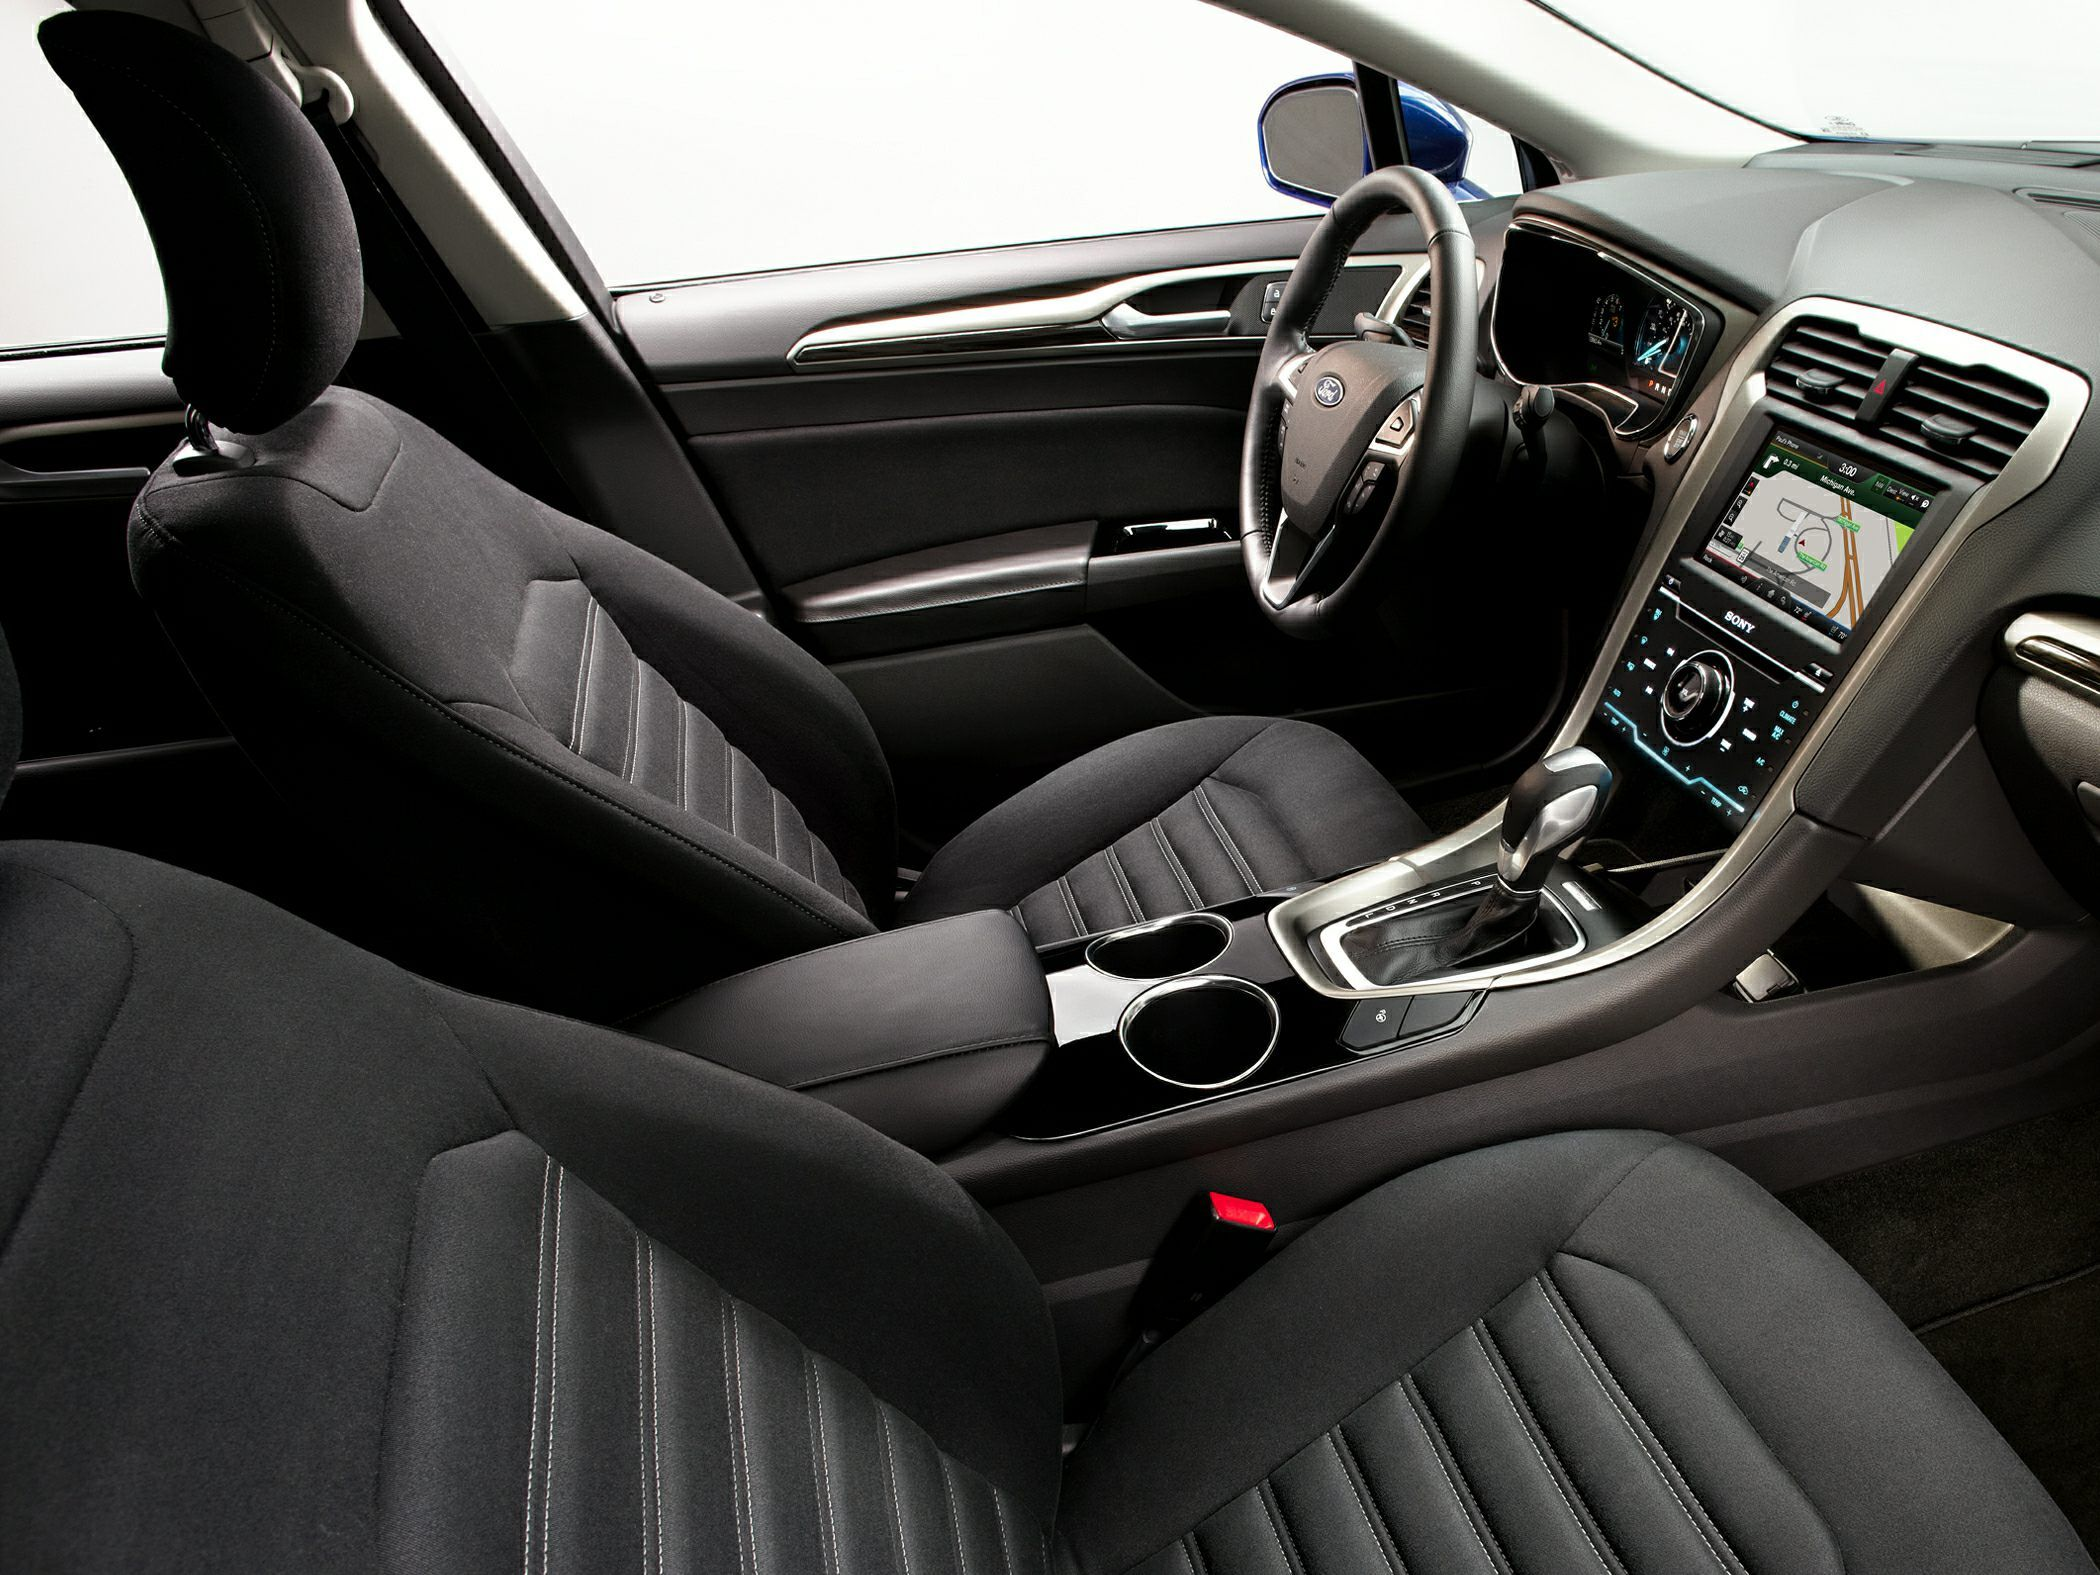 2014 Ford Fusion Hybrid Interior Ford Fusion 2013 Ford